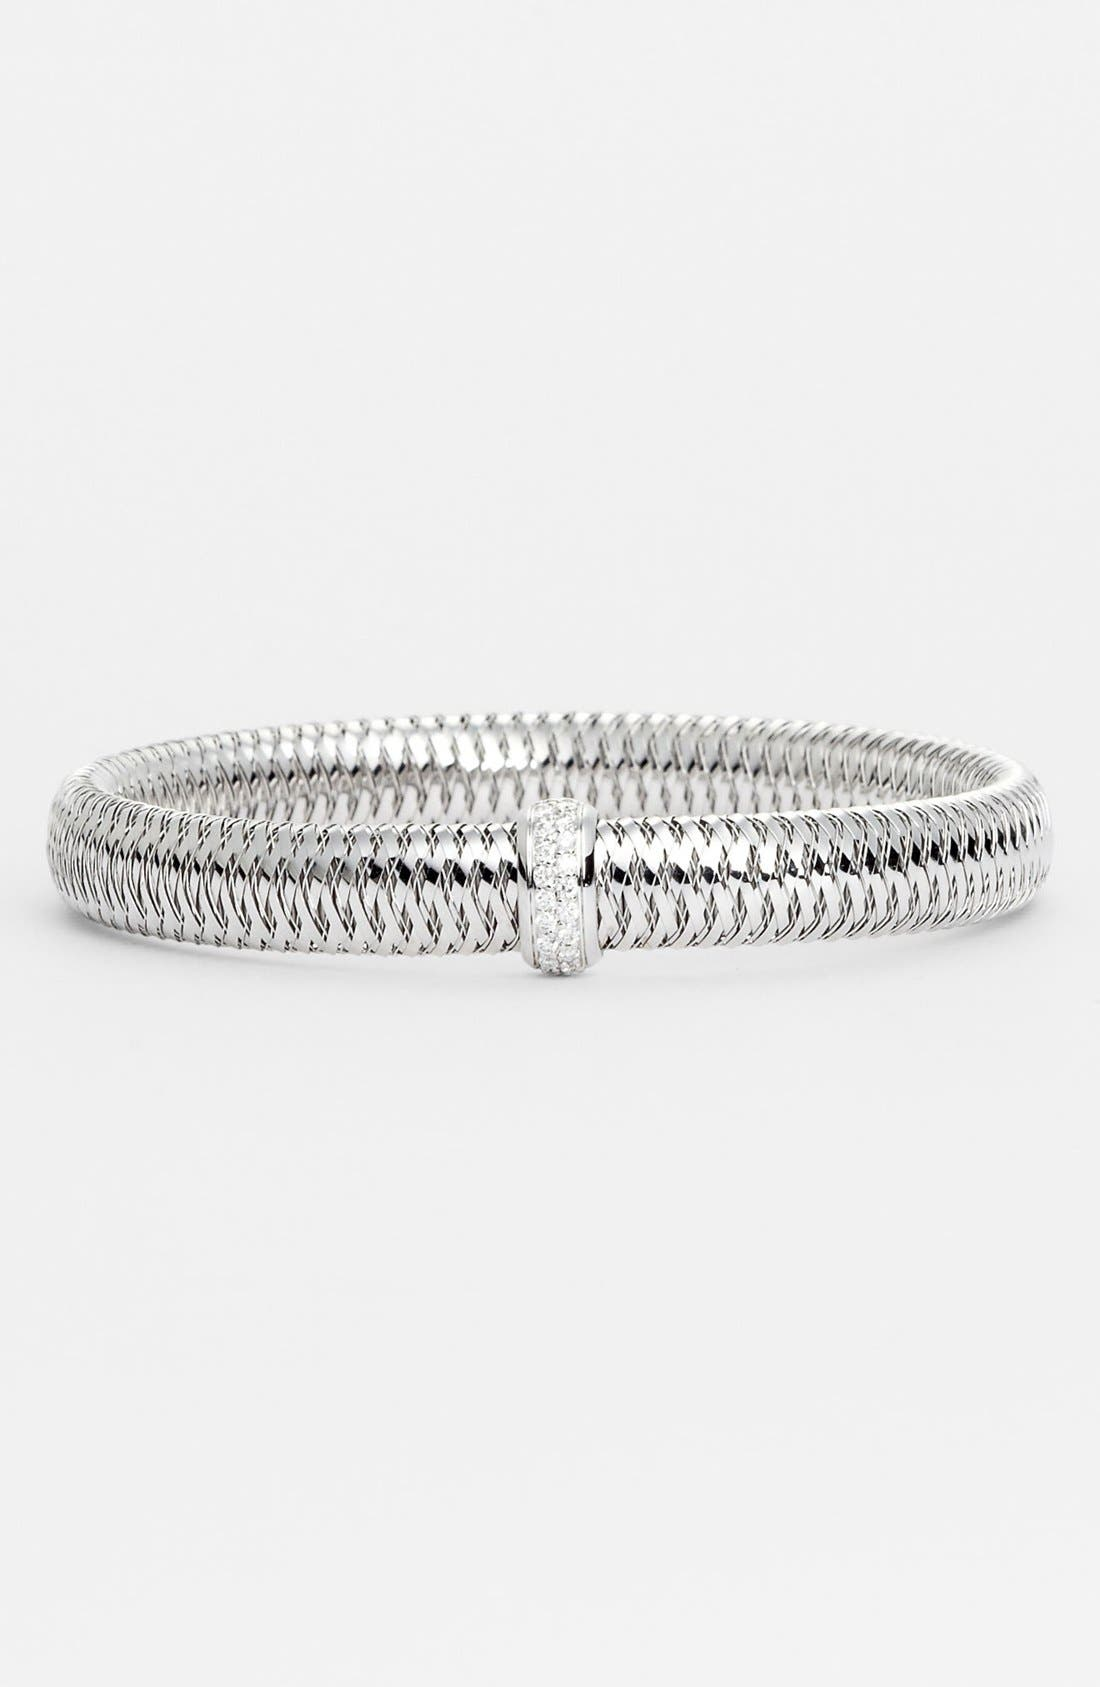 Alternate Image 1 Selected - Roberto Coin 'Primavera' Medium Diamond Bracelet